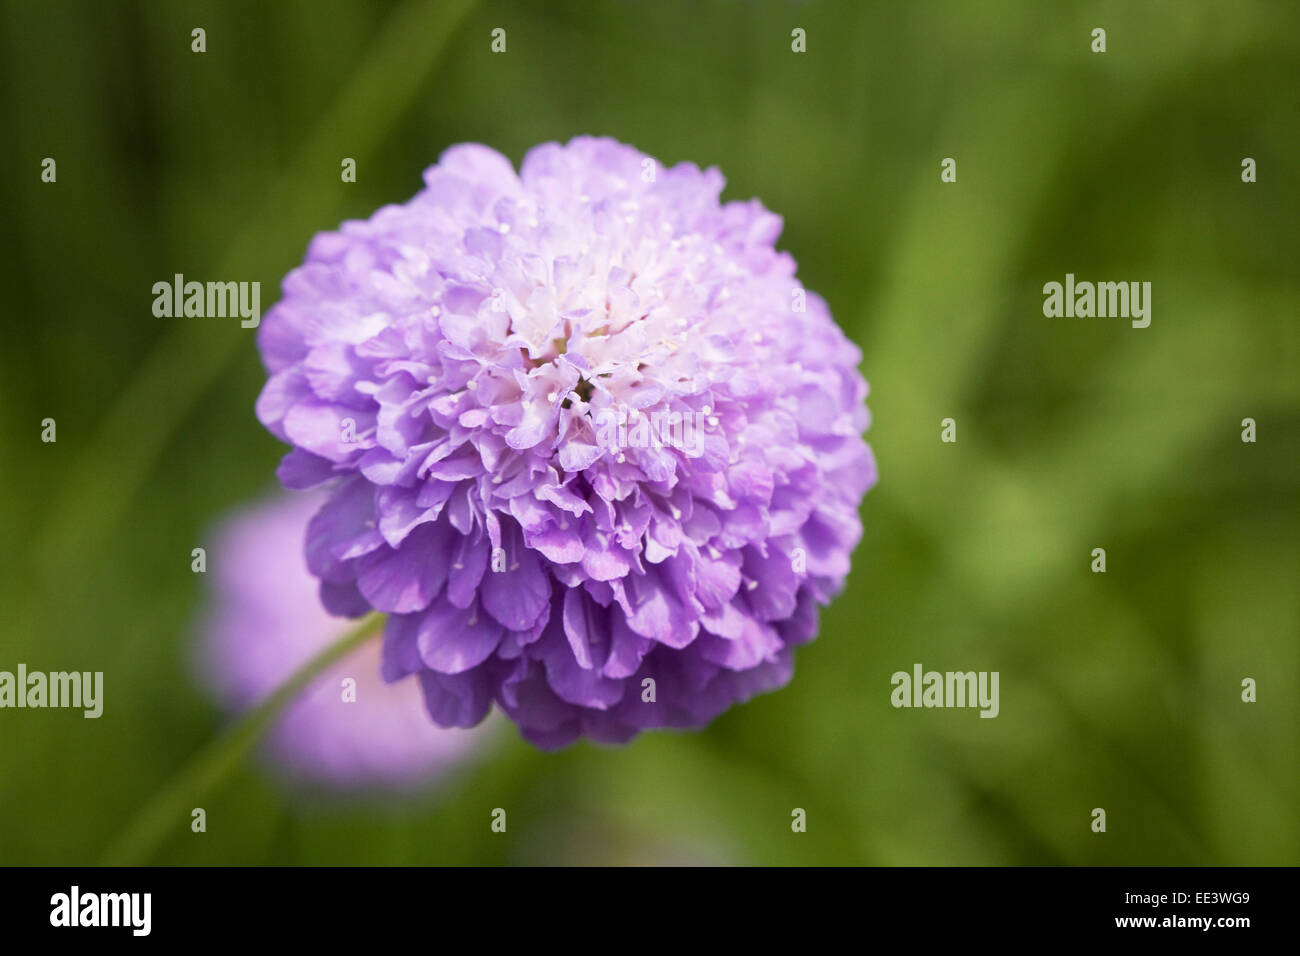 Scabiosa 'Oxford Blue'. Scabious flower close up. - Stock Image